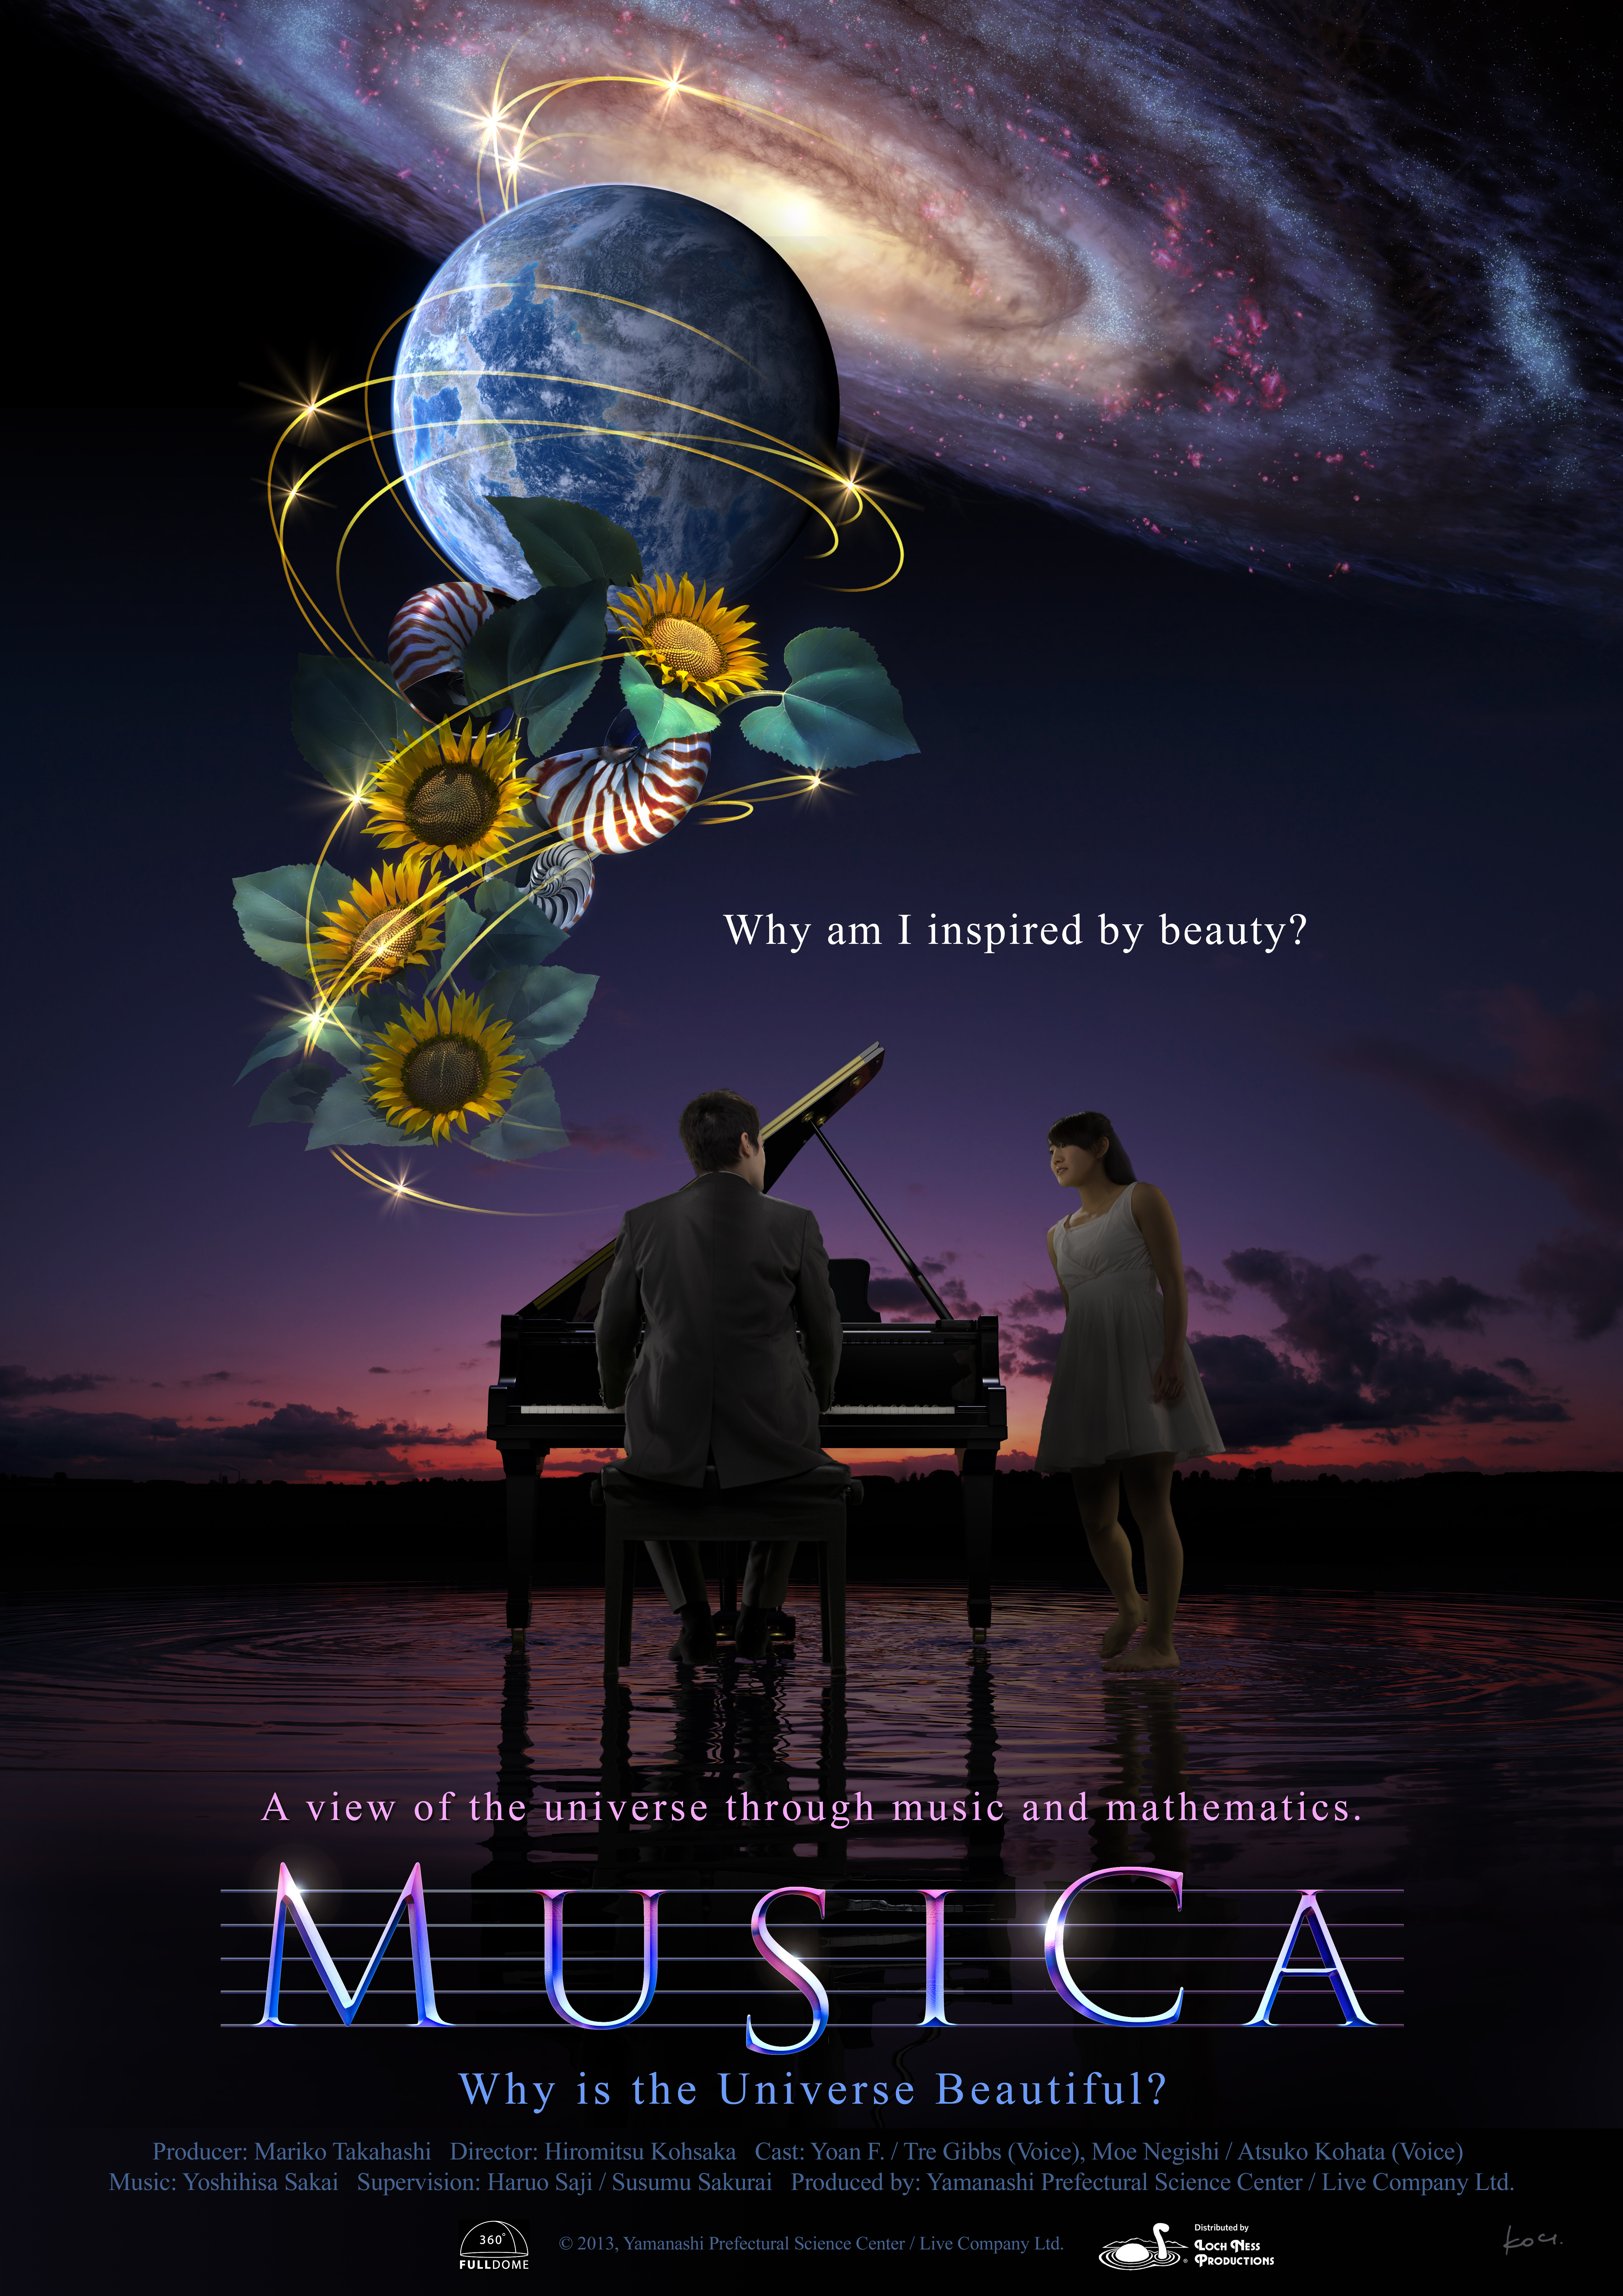 musica universe why poster shows mus beauty behind go lnp scenes am lochnessproductions lcl inspired